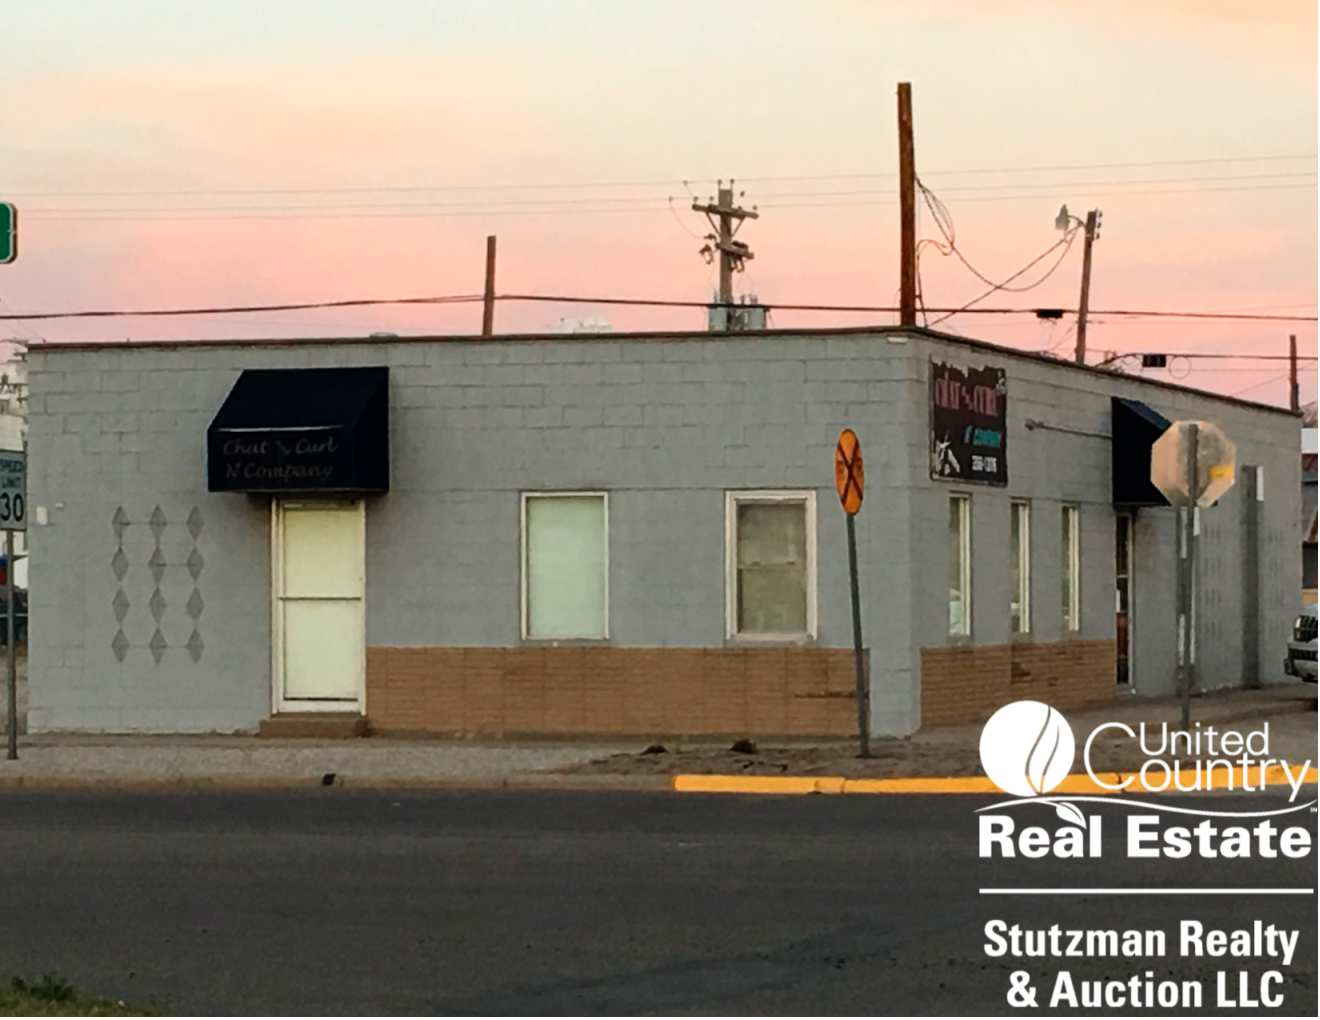 Investment and Turn-key business opportunity in Ulysses, KS